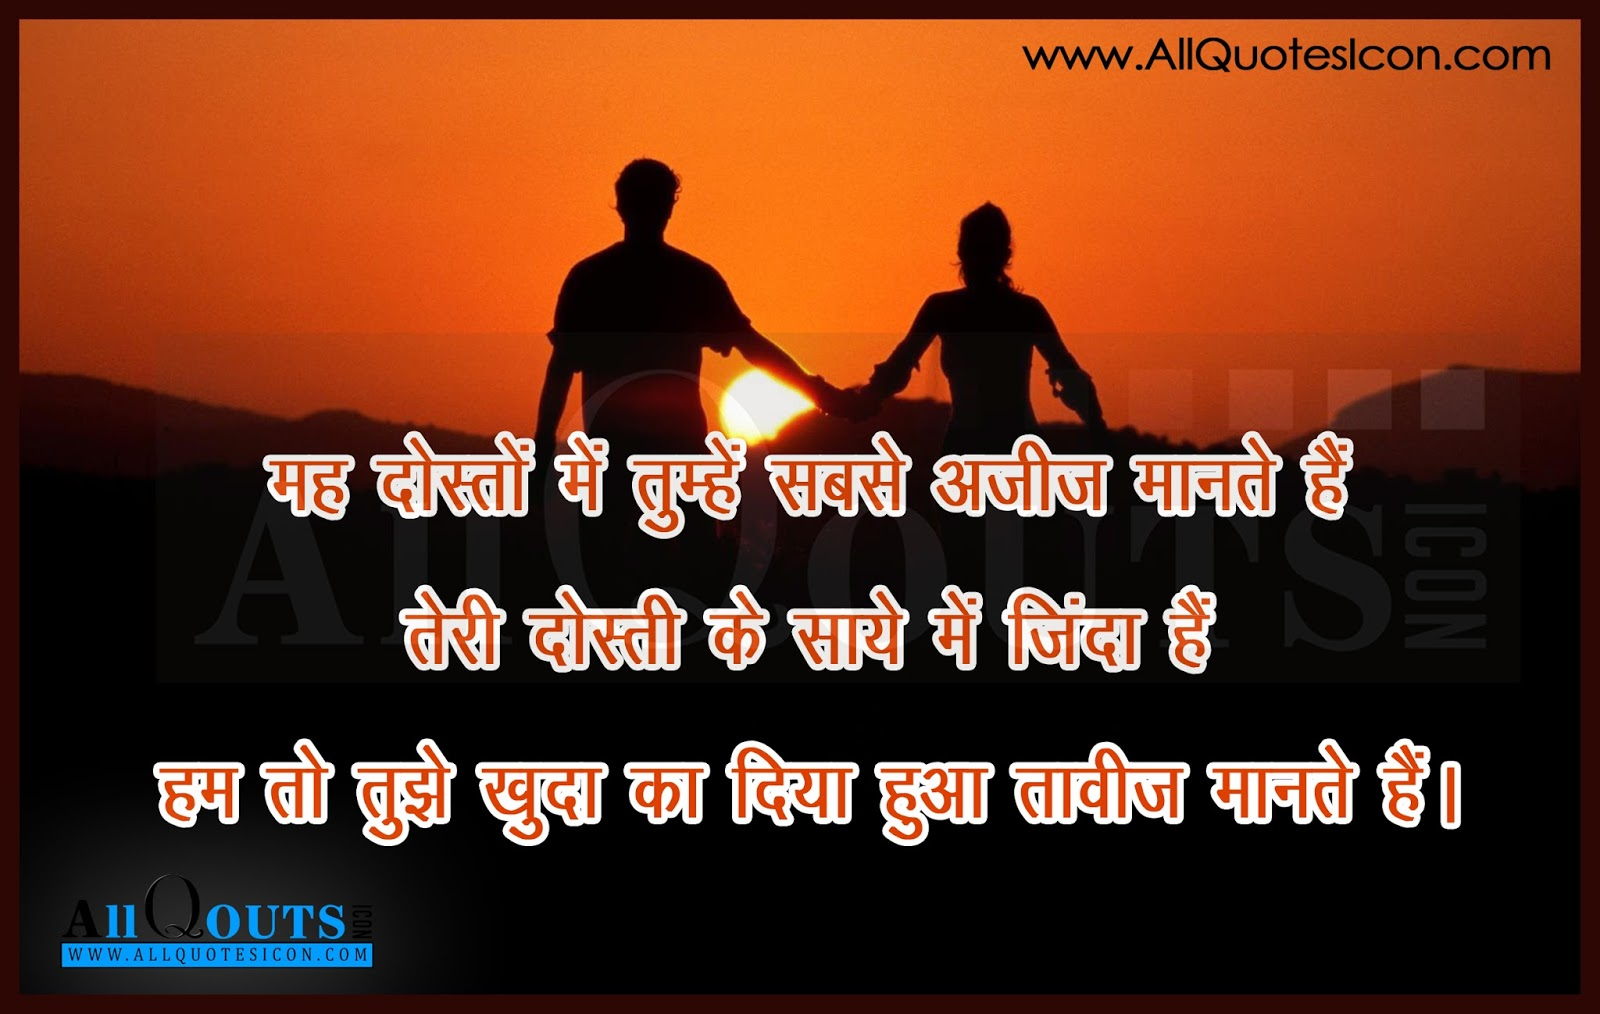 Hindi Friendship Quotes Images Motivation Thoughts Sayings